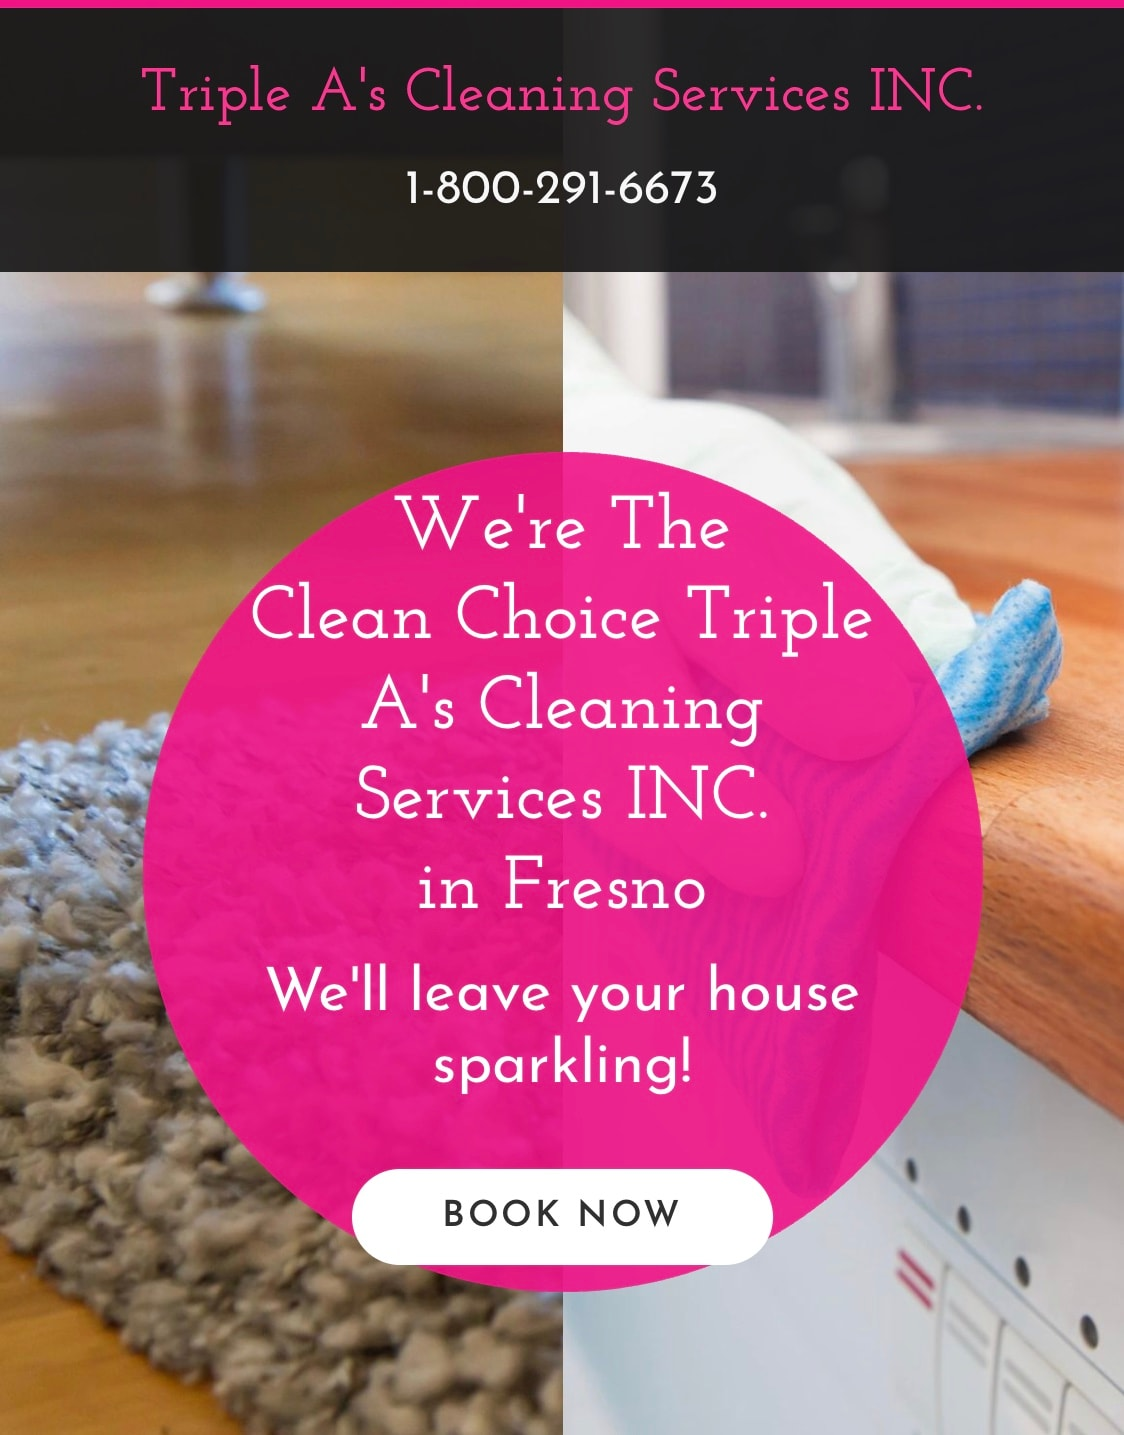 Triple As Cleaning Service Inc